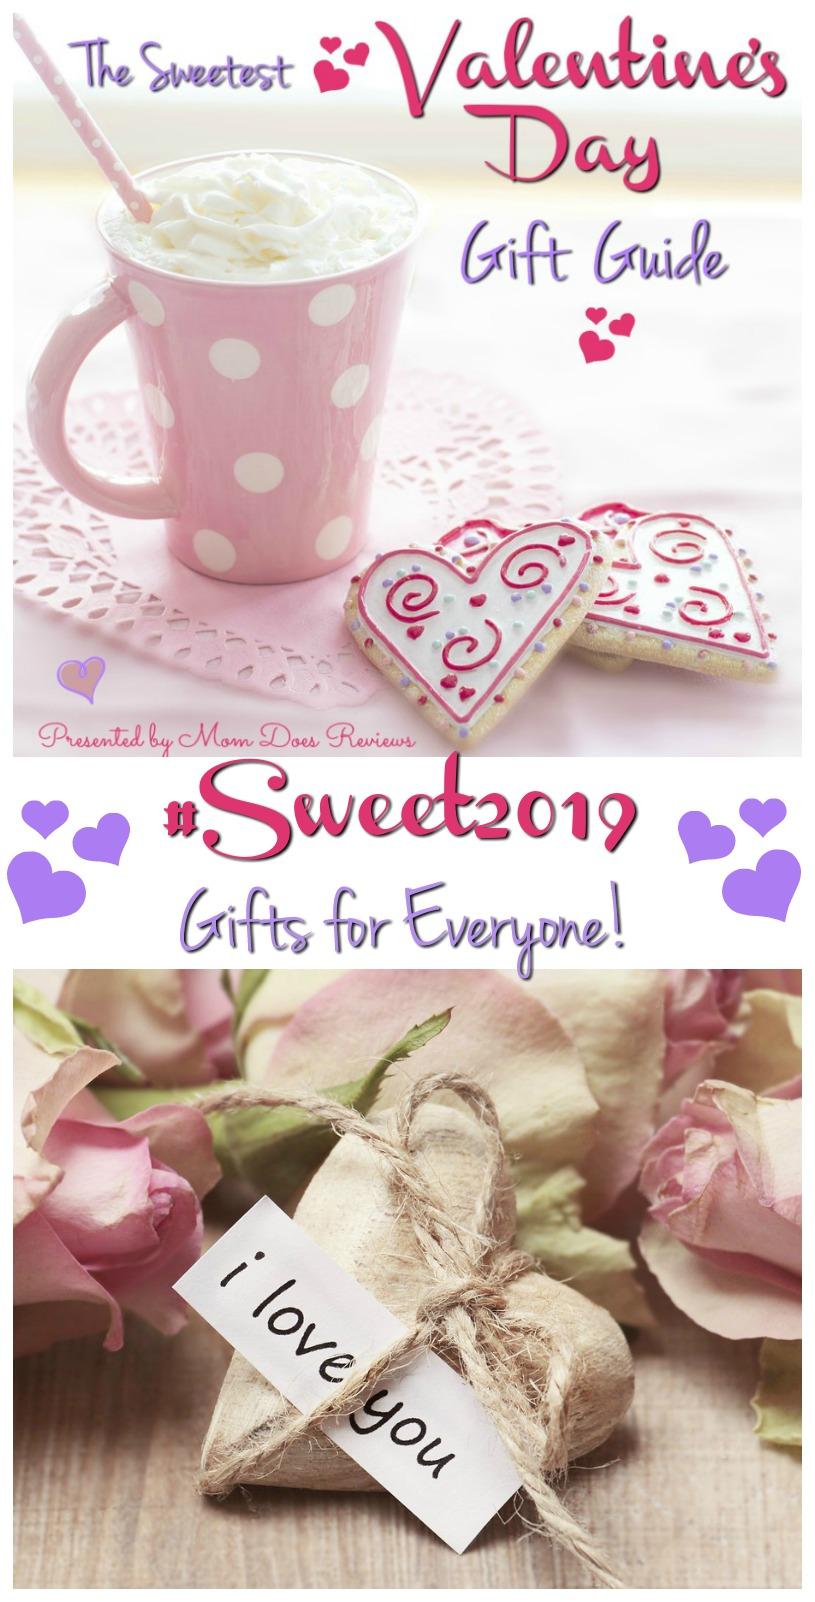 Sweet 2019 Valentine's Day Gift Guide #Sweet2019 #valentinesday #love #giftguide